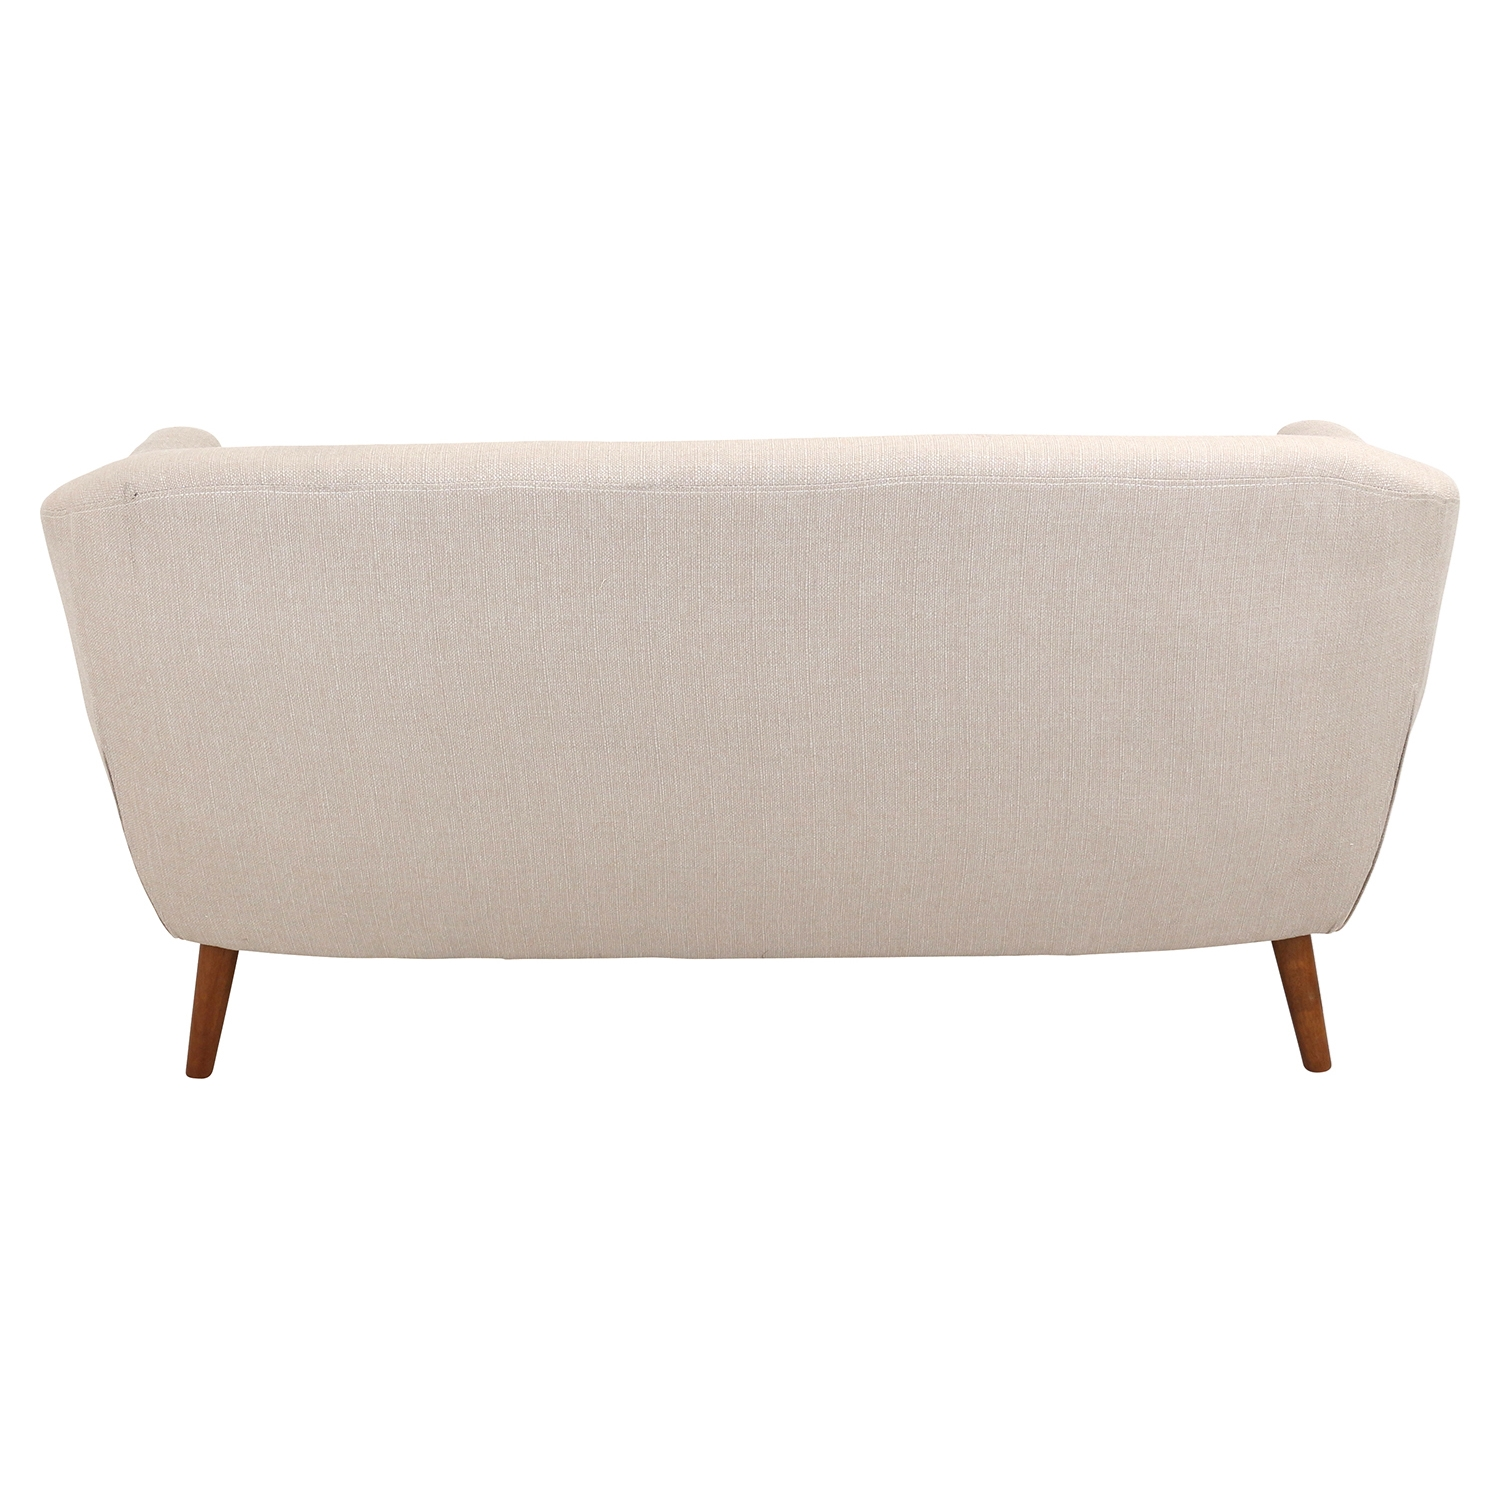 Rockwell Upholstery Sofa - Button Tufted, Beige - LMS-CHR-AH-RK58-BG